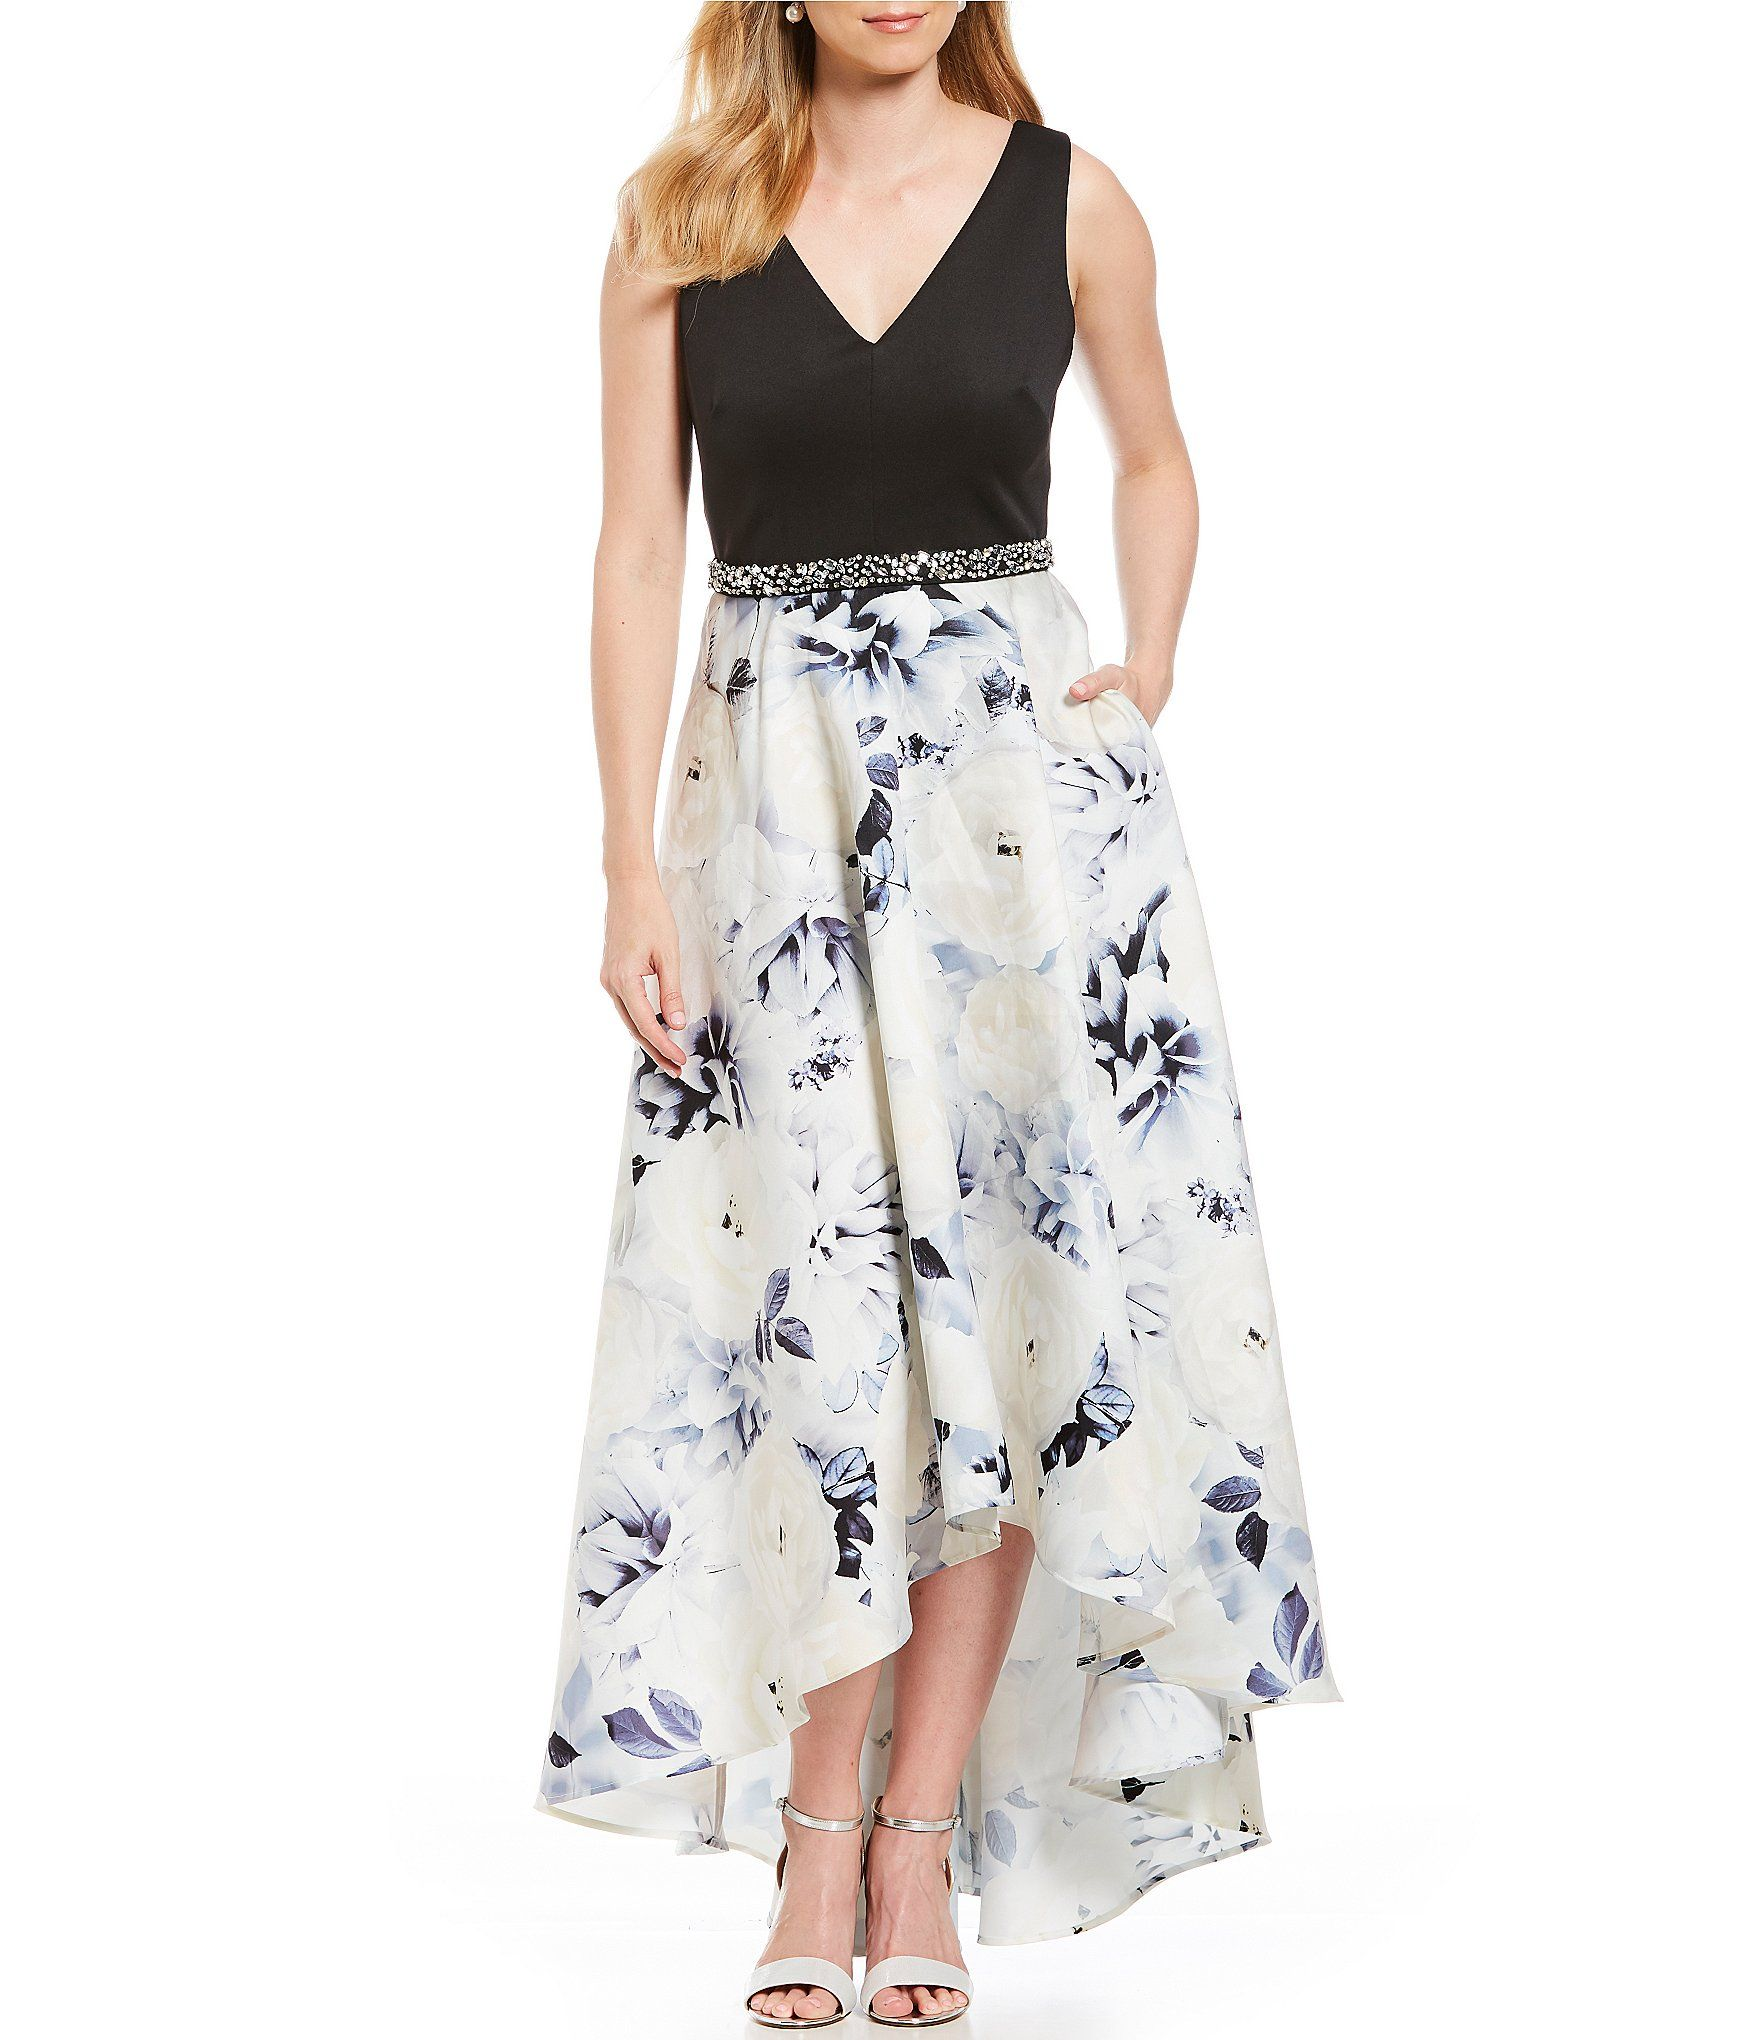 681ac5a636f Ignite Evenings HiLow Floral Printed Ballgown  Dillards